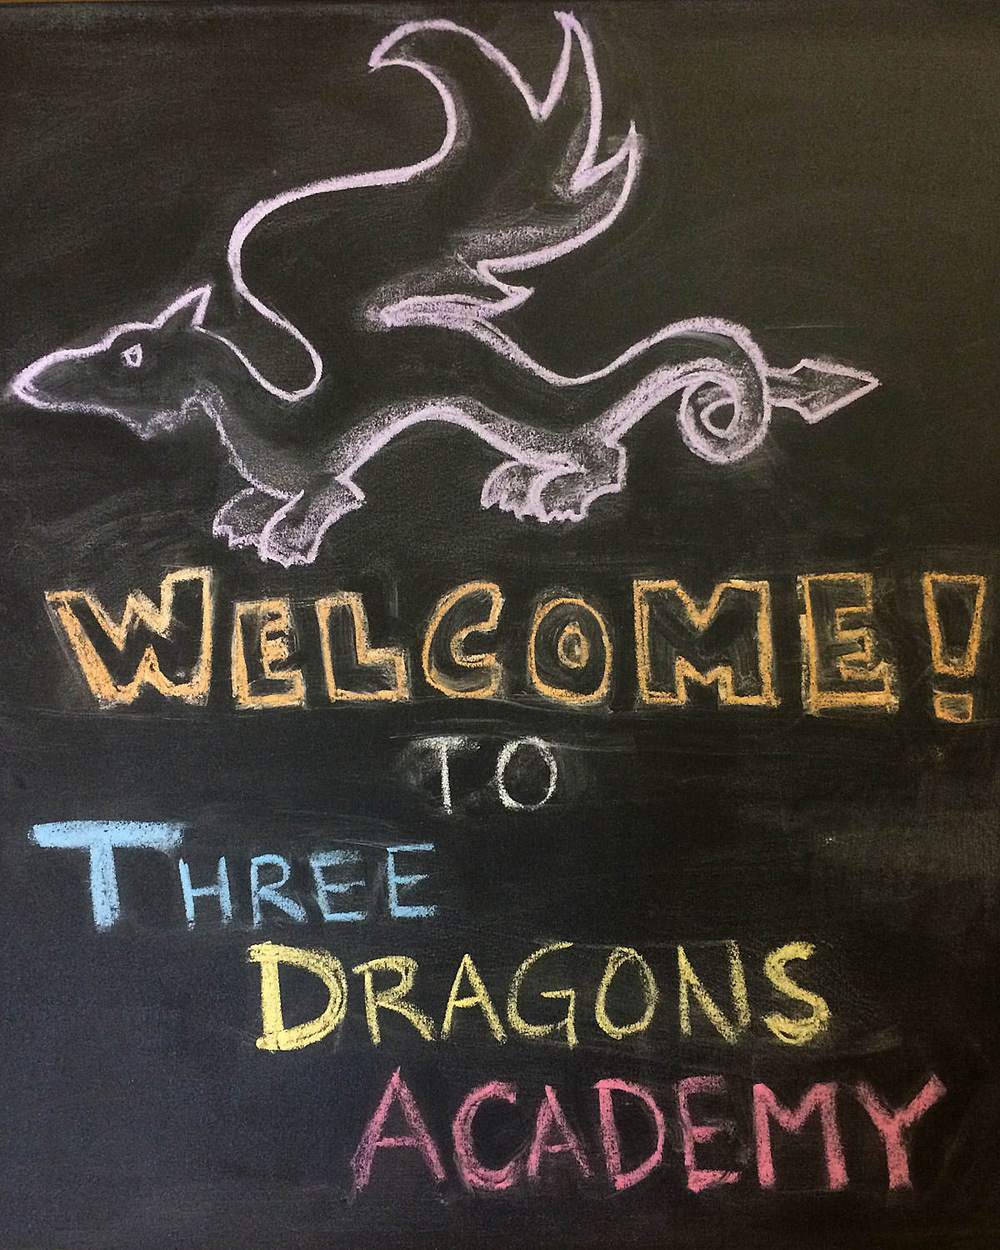 Three Dragons Academy hand drawn welcome sign.